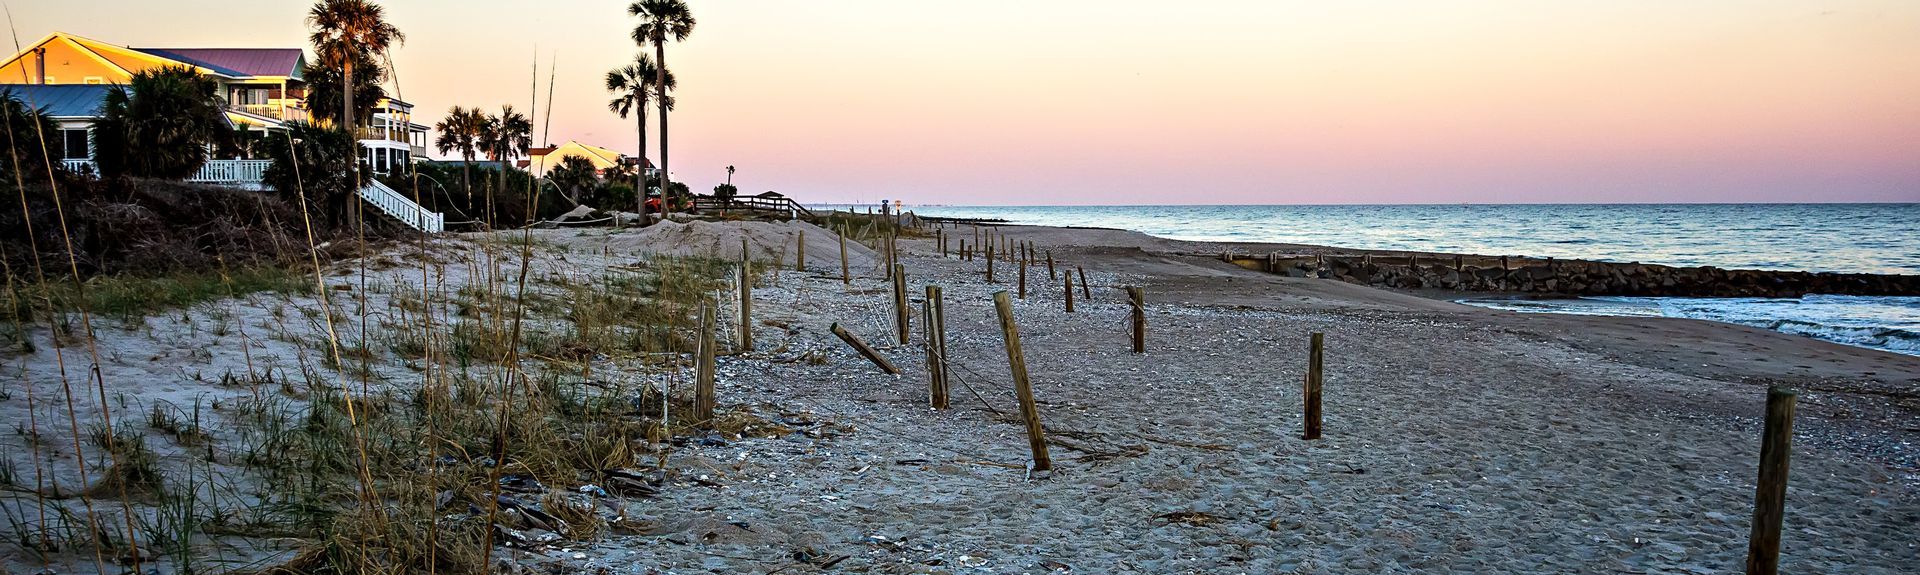 Edisto Beach, Edisto Island, Carolina do Sul, Estados Unidos